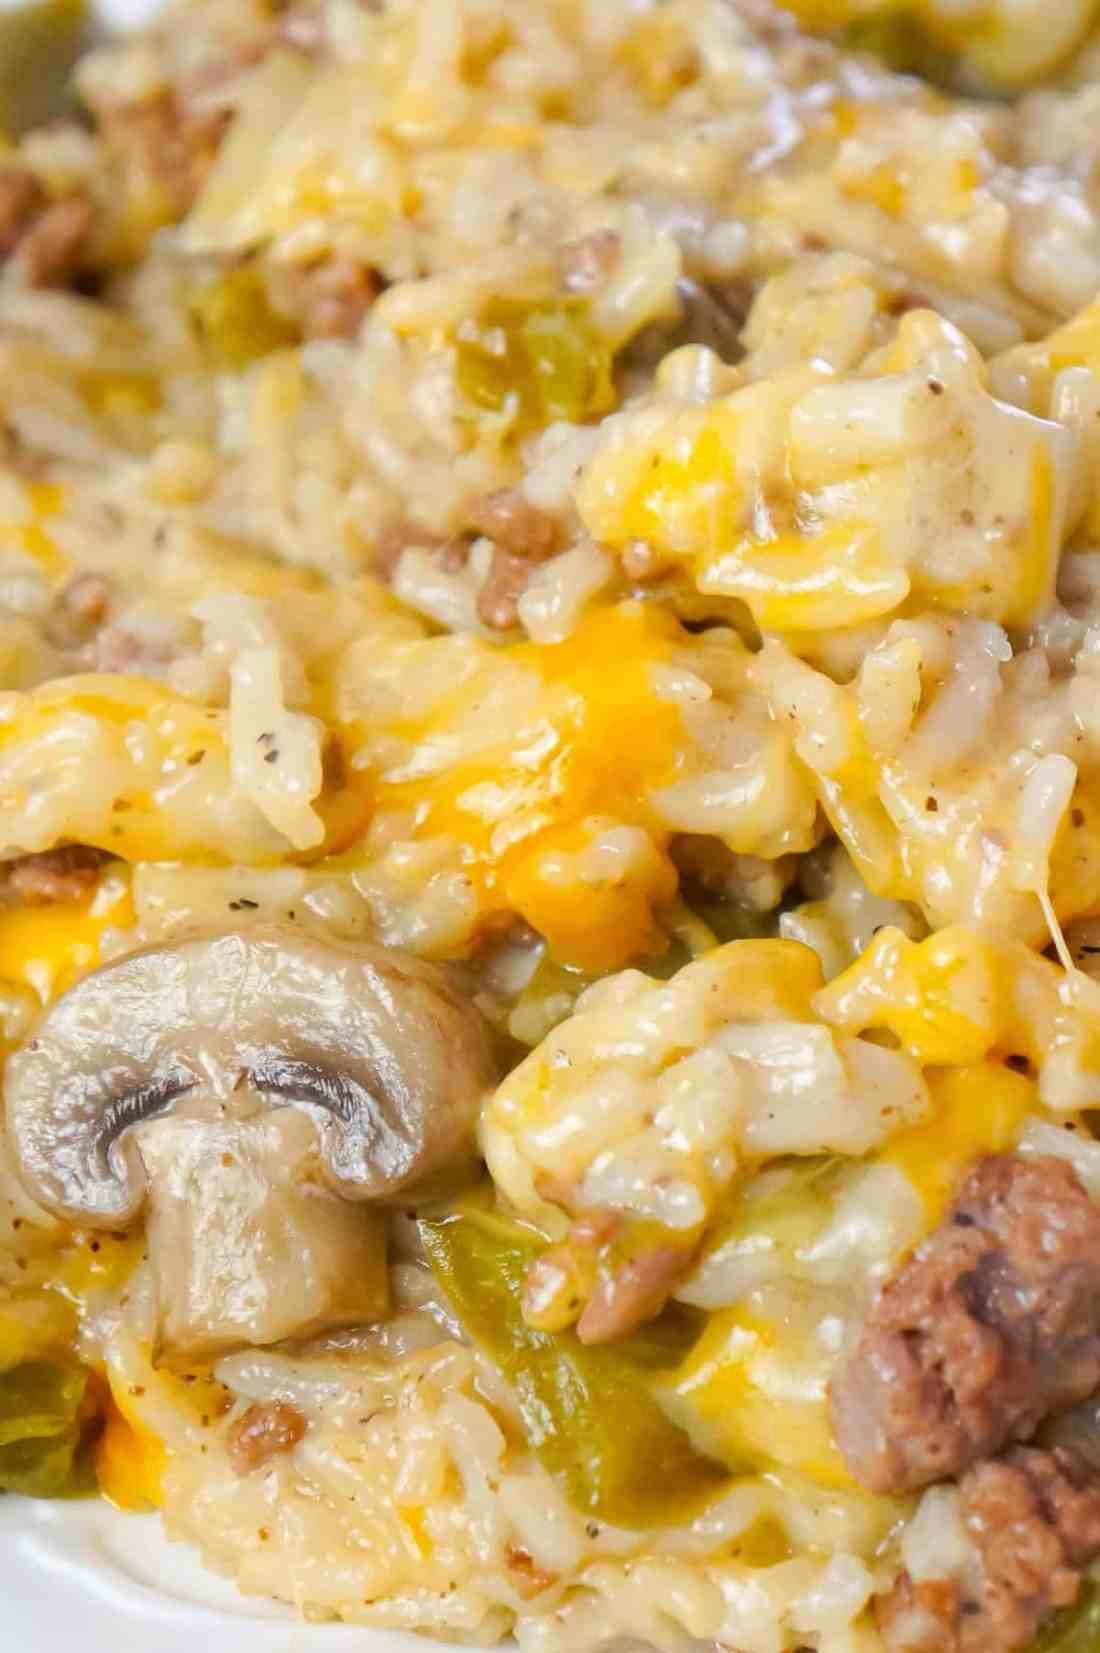 Instant Pot Philly Cheese Steak Ground Beef and Rice is an easy ground beef dinner recipe loaded with long grain white rice, green peppers, onions, mushrooms and shredded cheese.